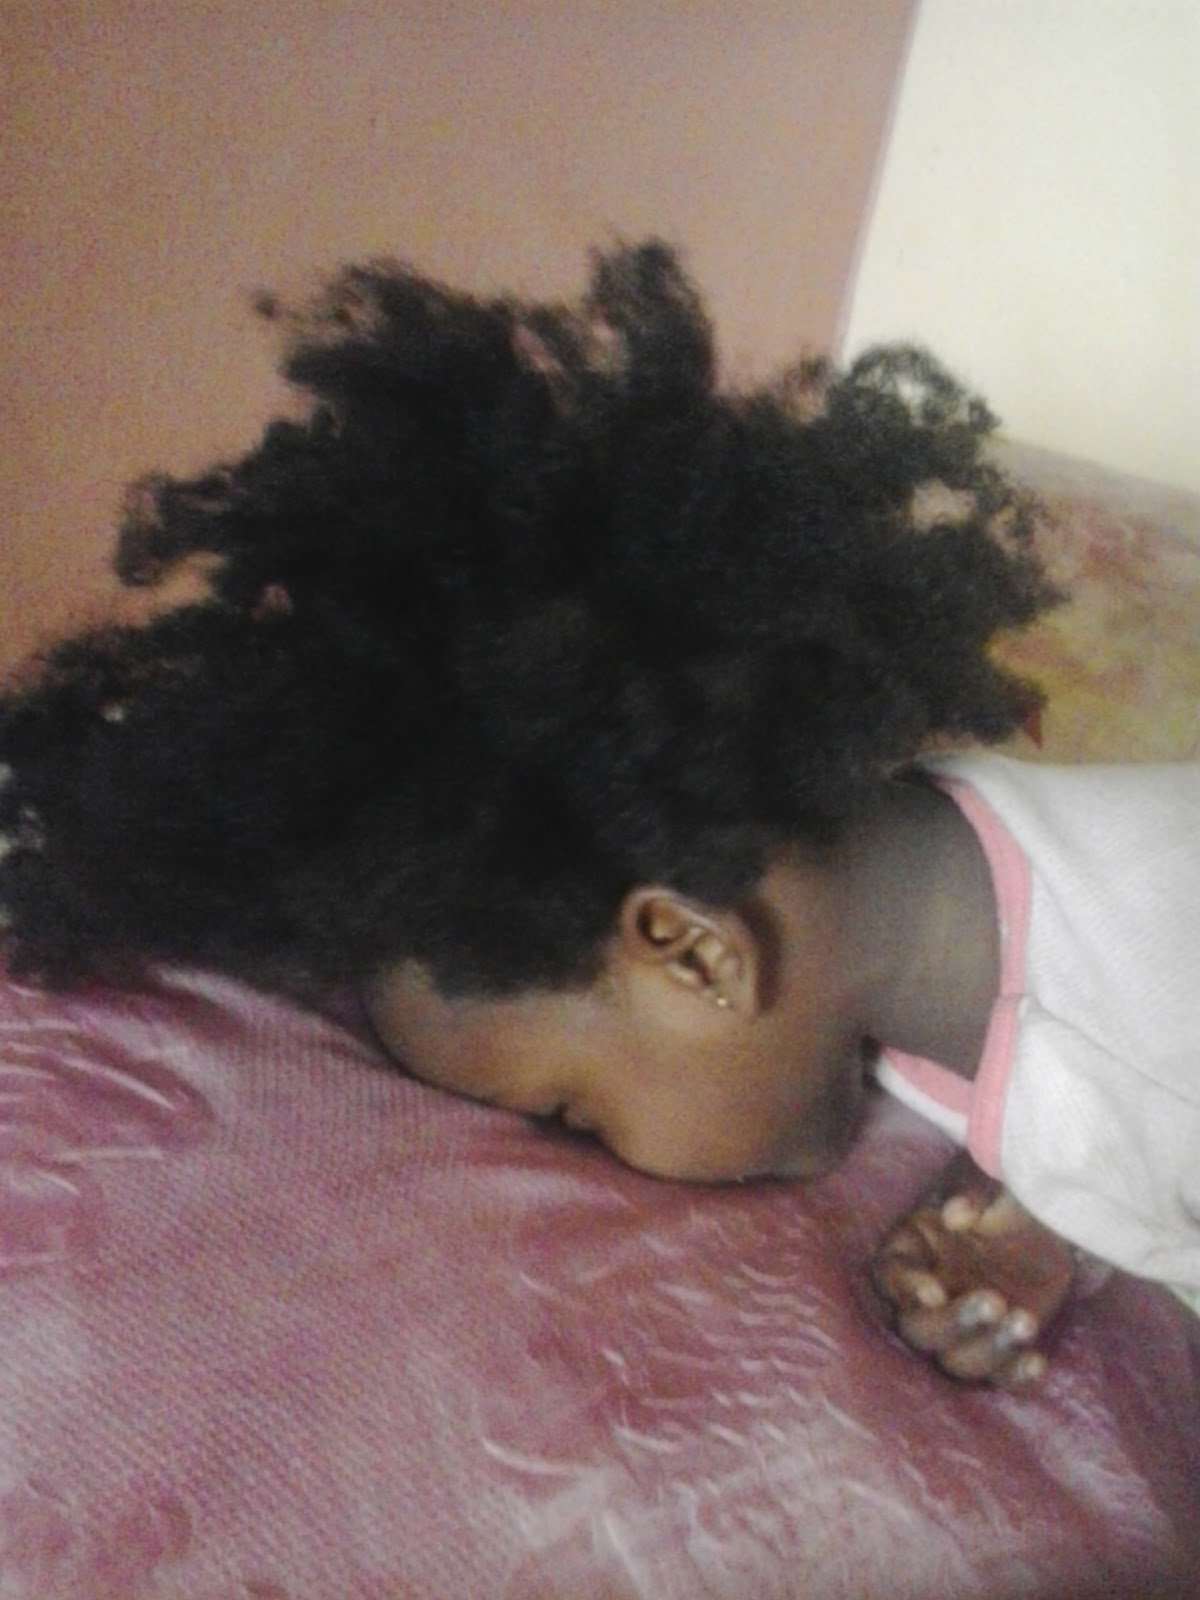 kid's afro haircare